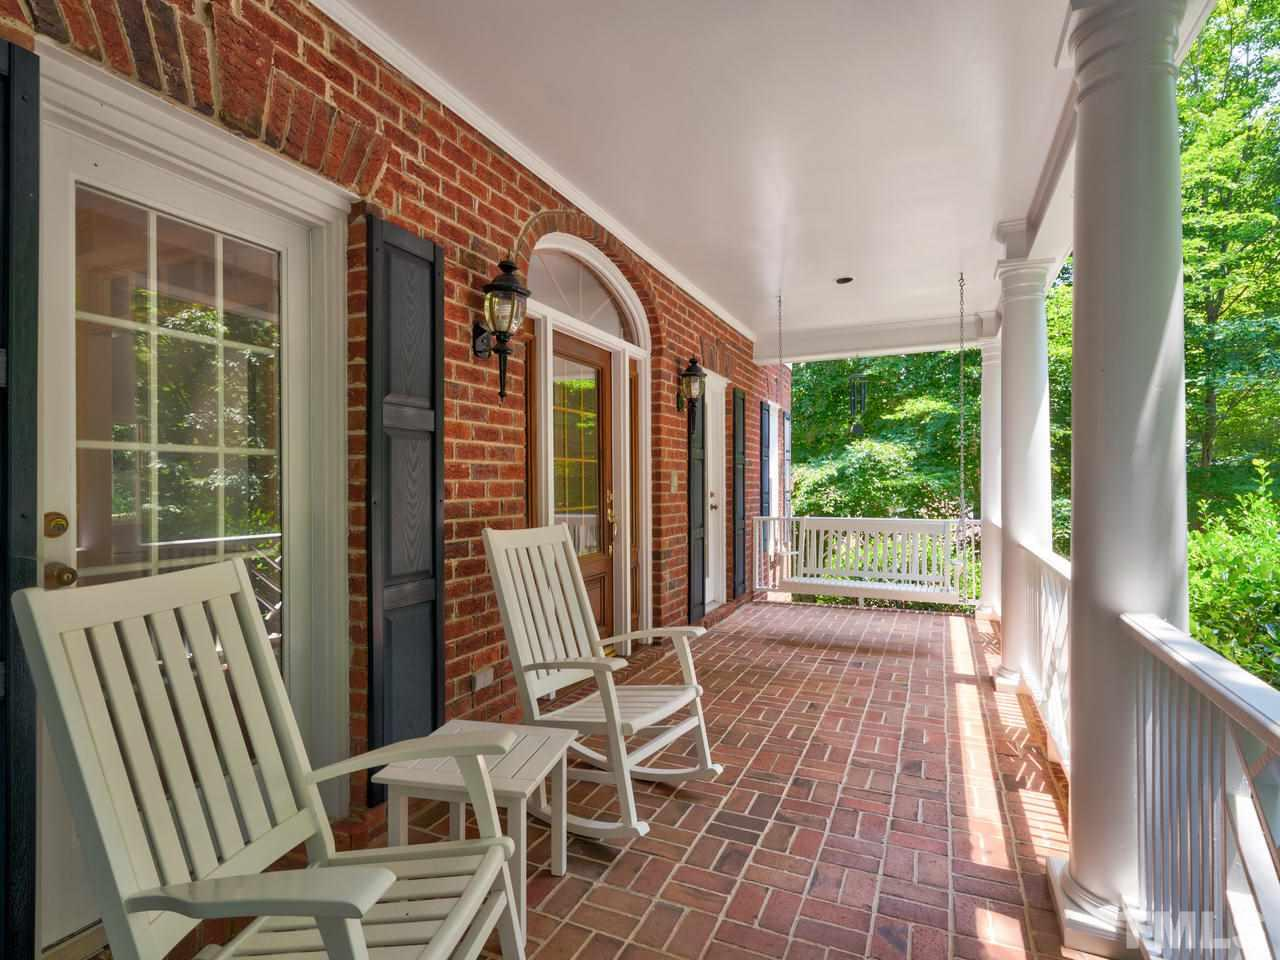 Come sit and relax on this delightful front porch!